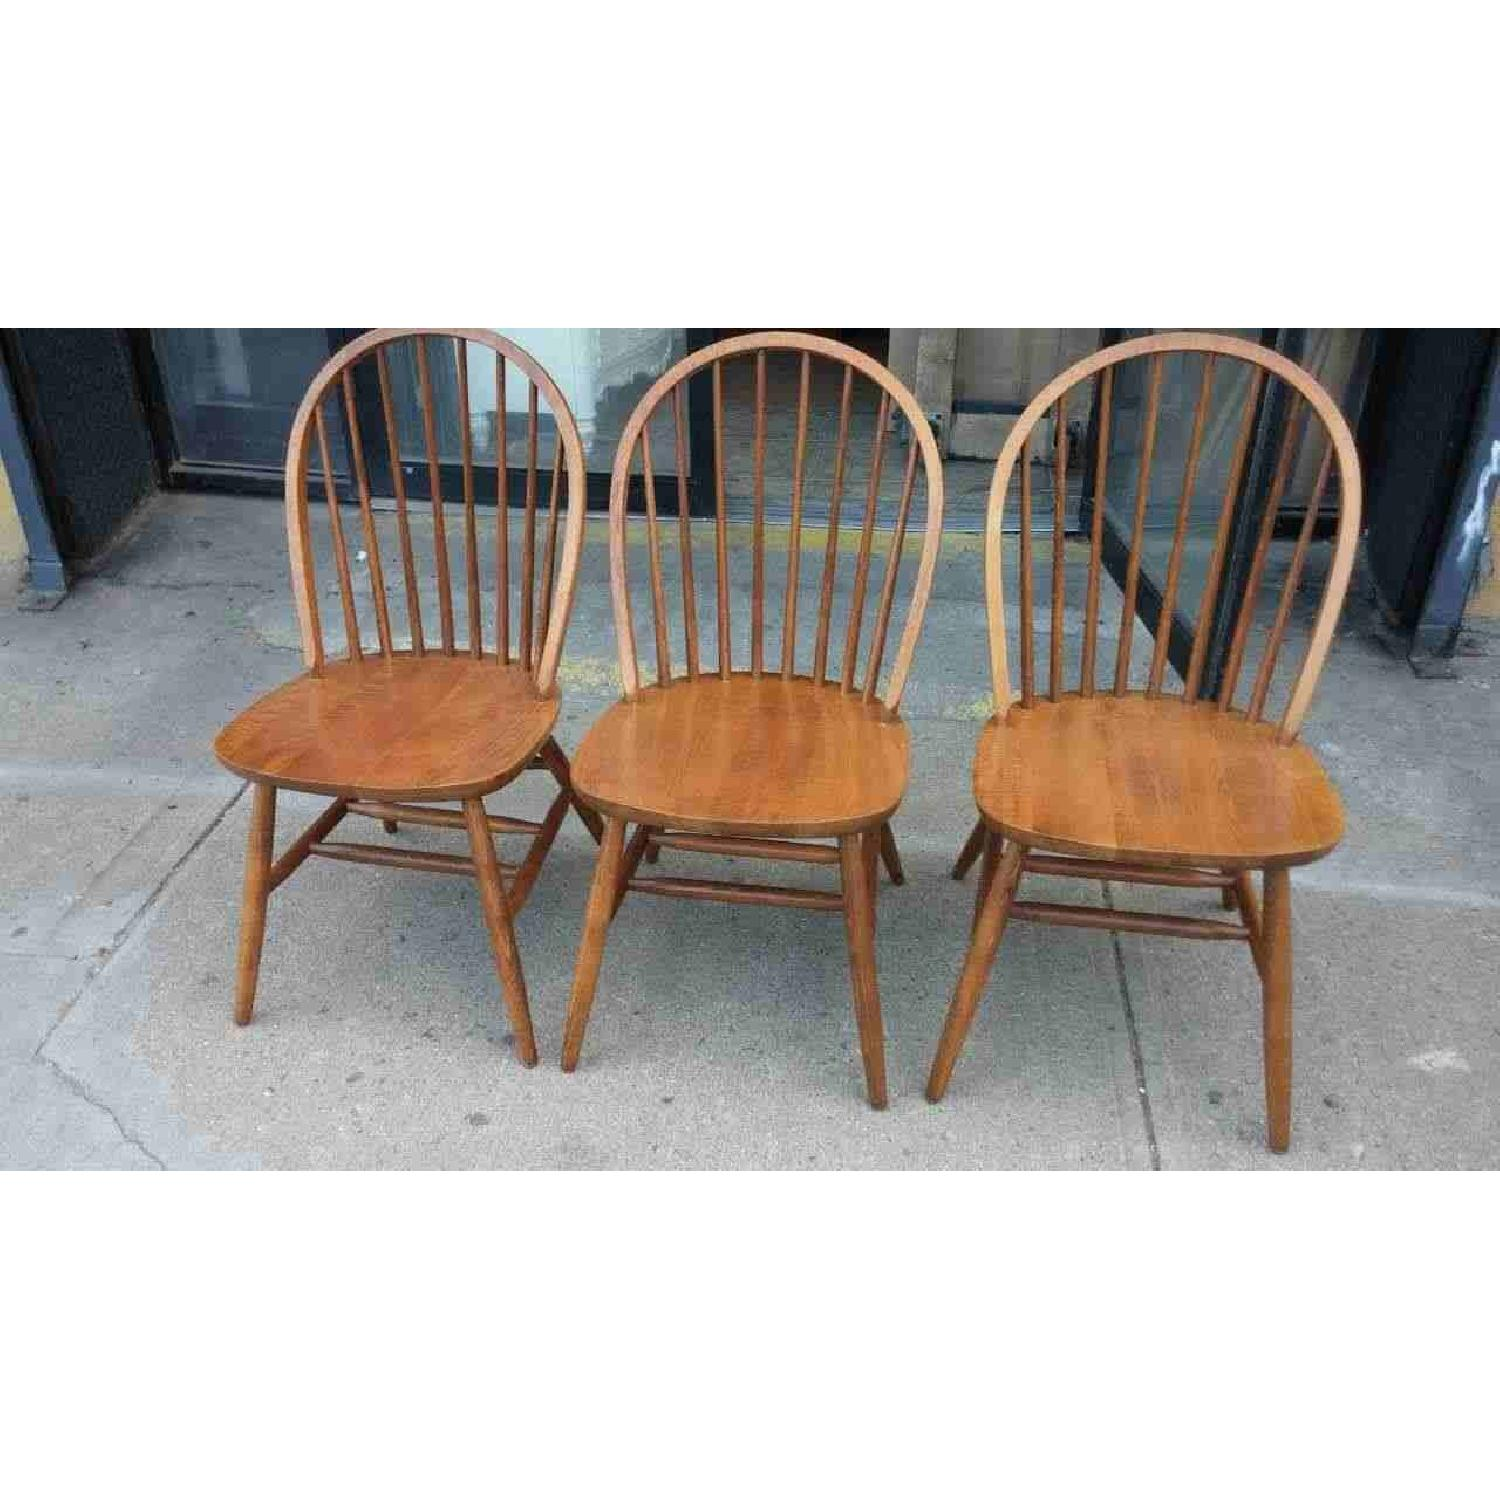 Solid Wood Dining Chairs - image-1